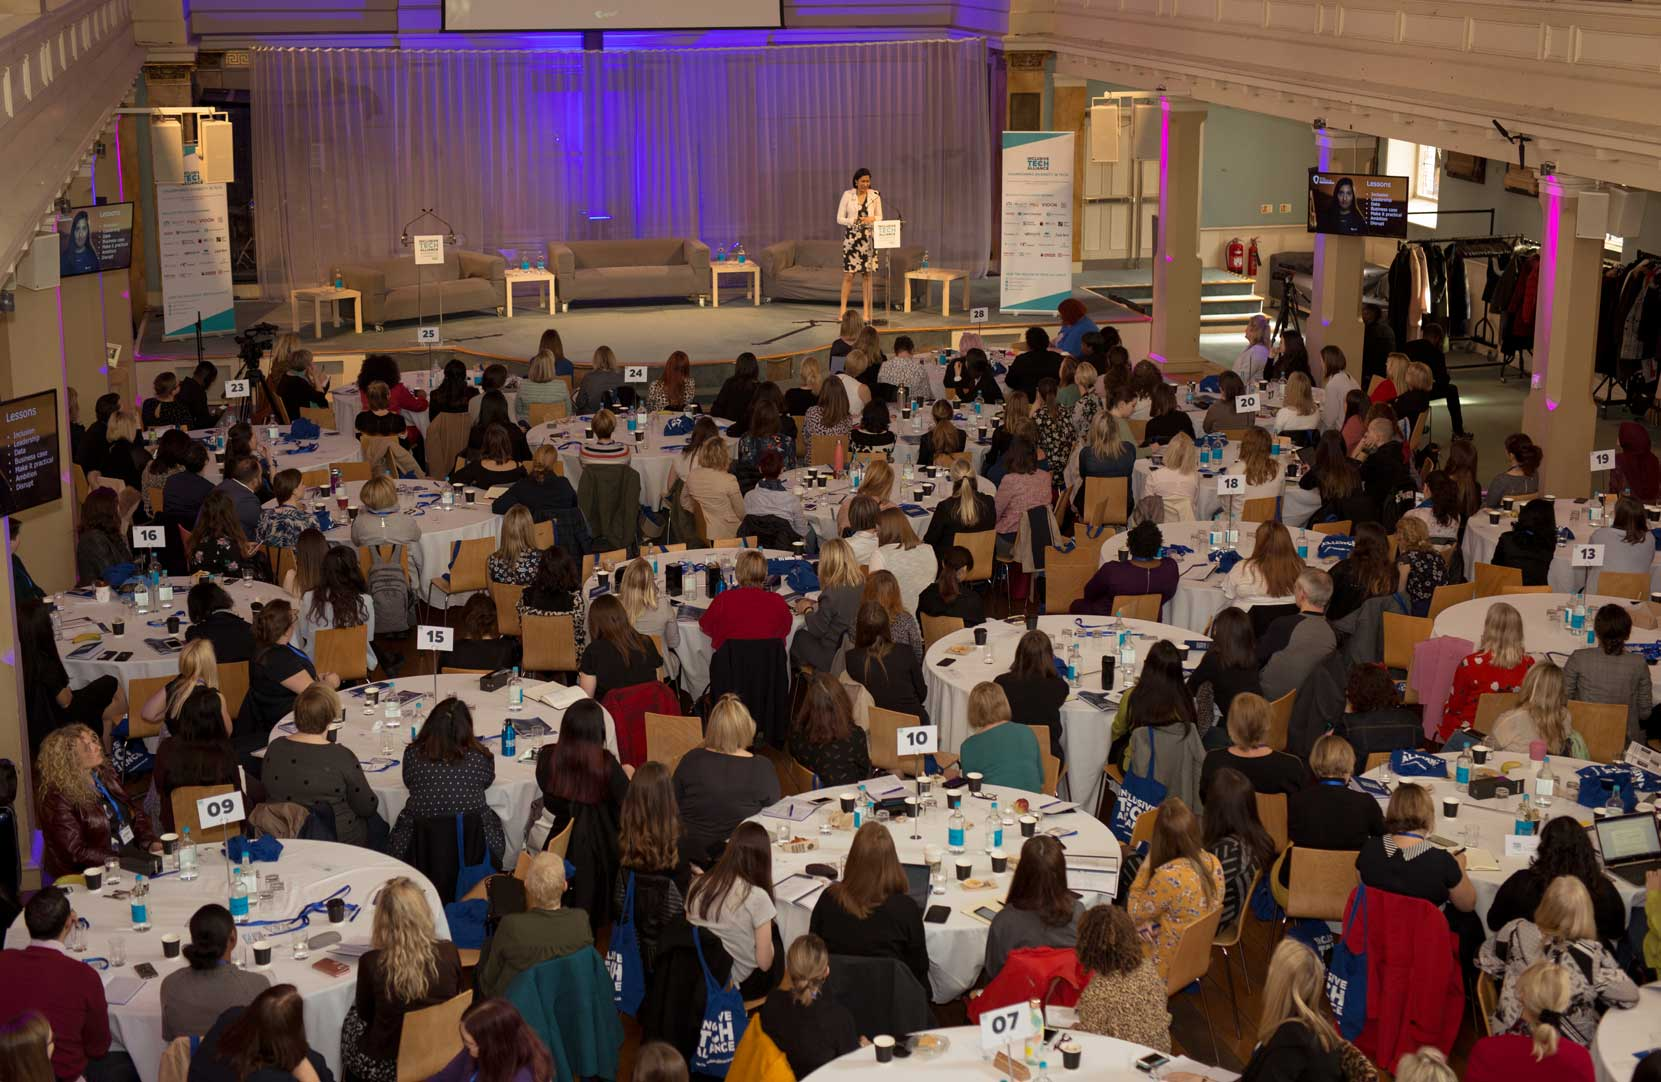 cabaret style conference for 250 guests at Conference with screens and sofa style seating at St Mary's Venue Hire, London